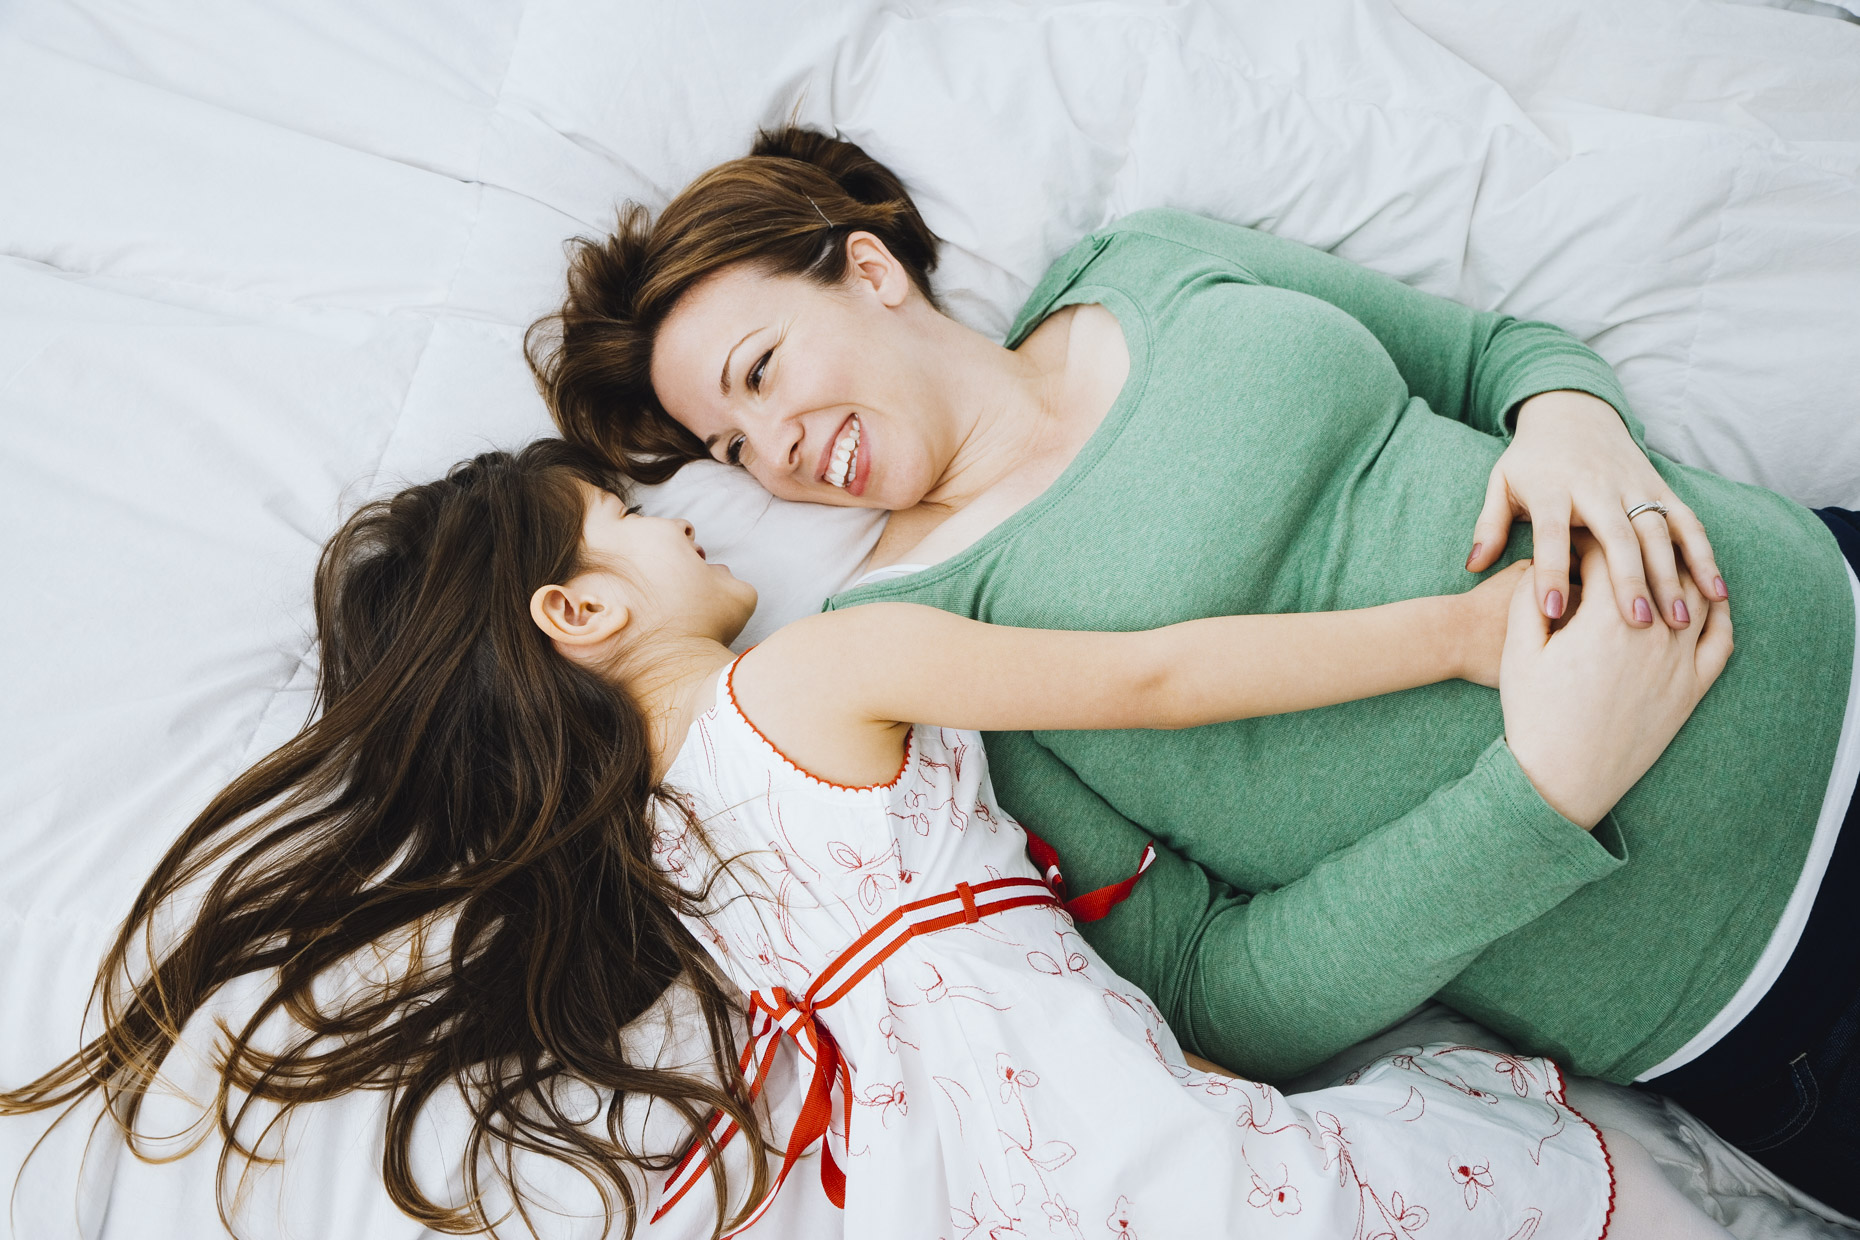 Girl-laying-on-bed-with-pregnant-mom-touching-belly-Inti-St-Clair-20071218168copy